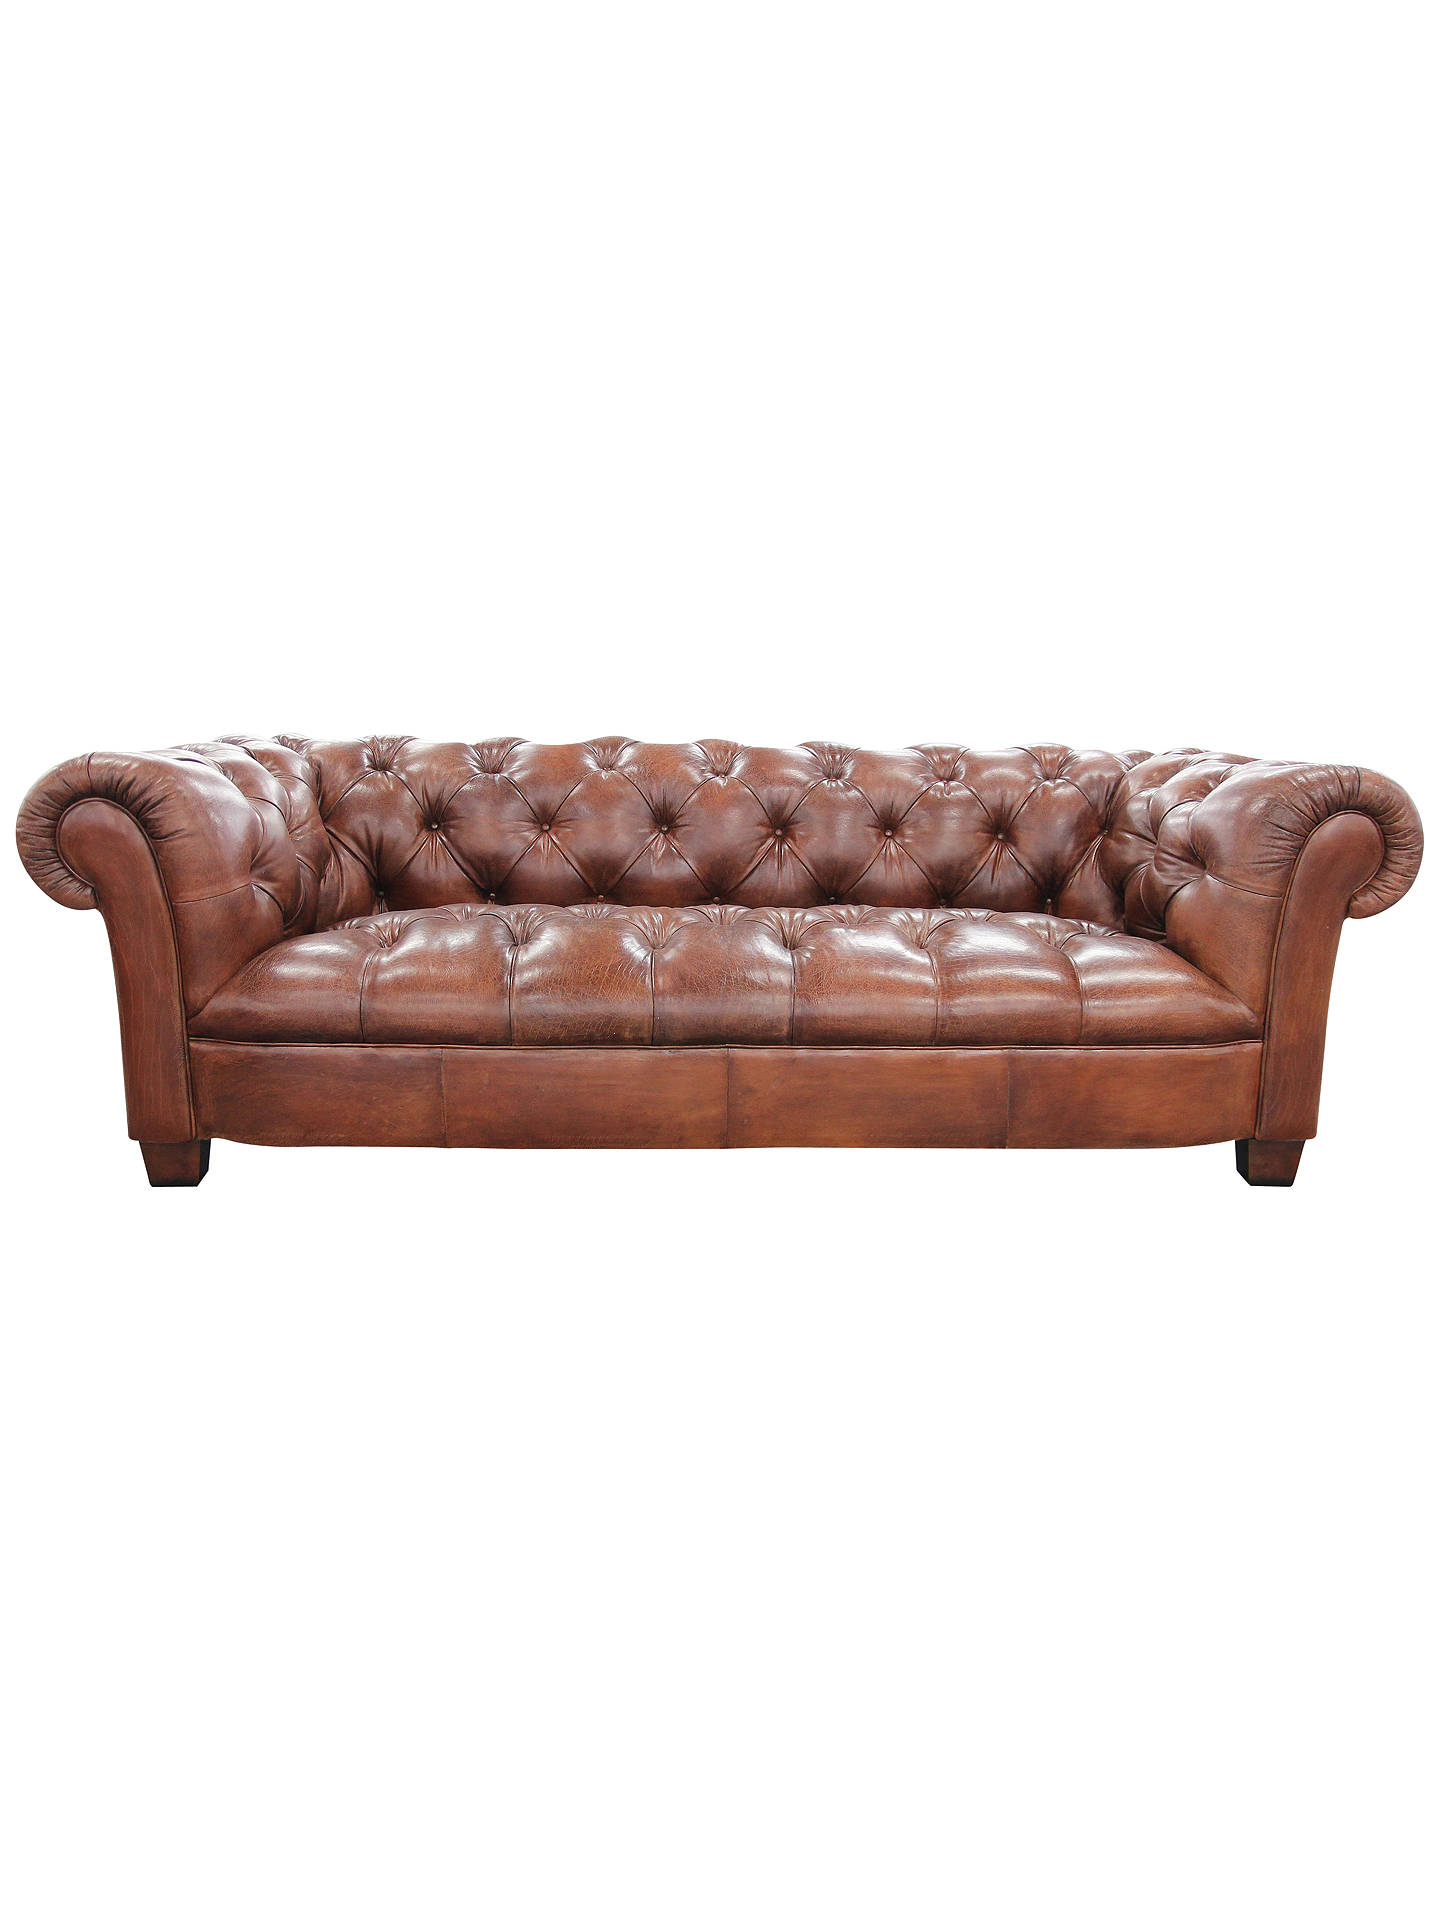 BuyJohn Lewis Todd Grand Leather Chesterfield Sofa, Tan Online At  Johnlewis.com ...